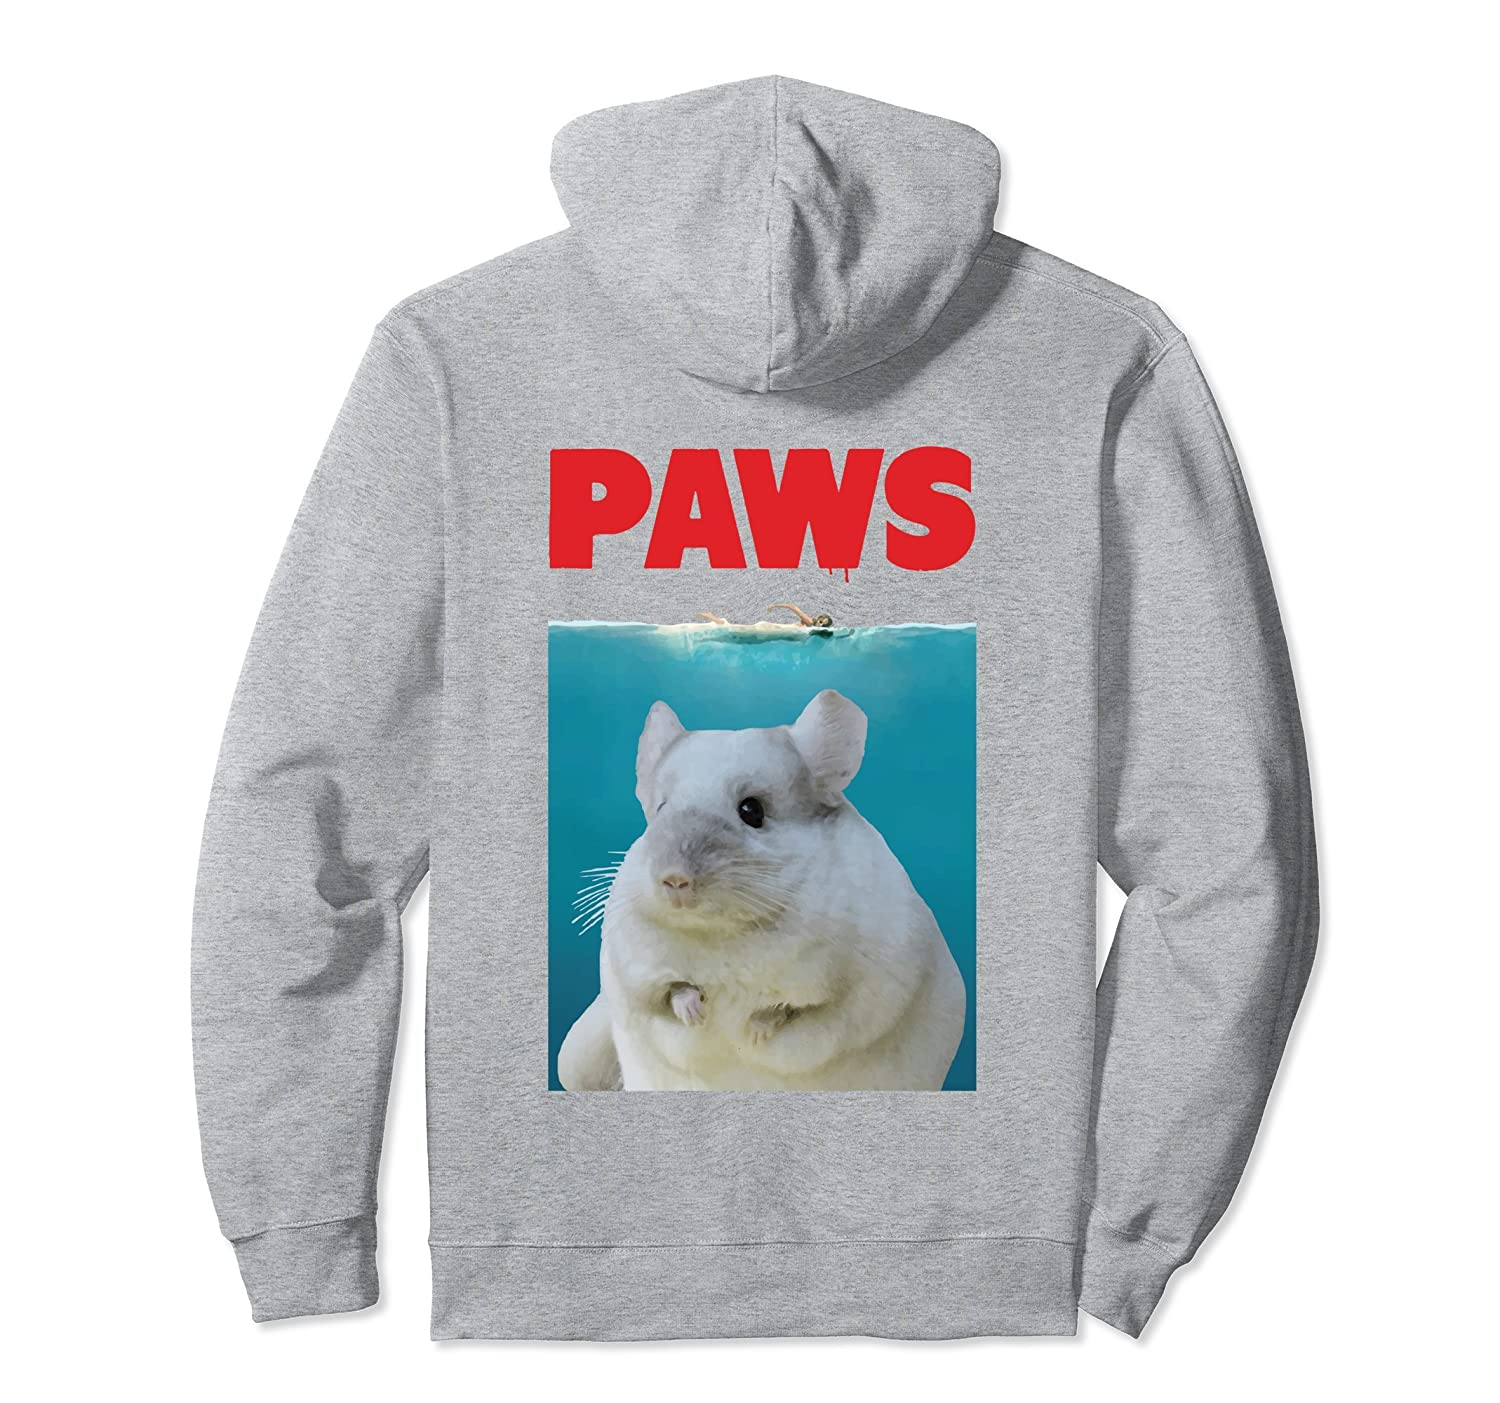 551fb2563 Paws Chinchilla Funny Hoodie Parody | Chinchillin' Gifts-Colonhue ...